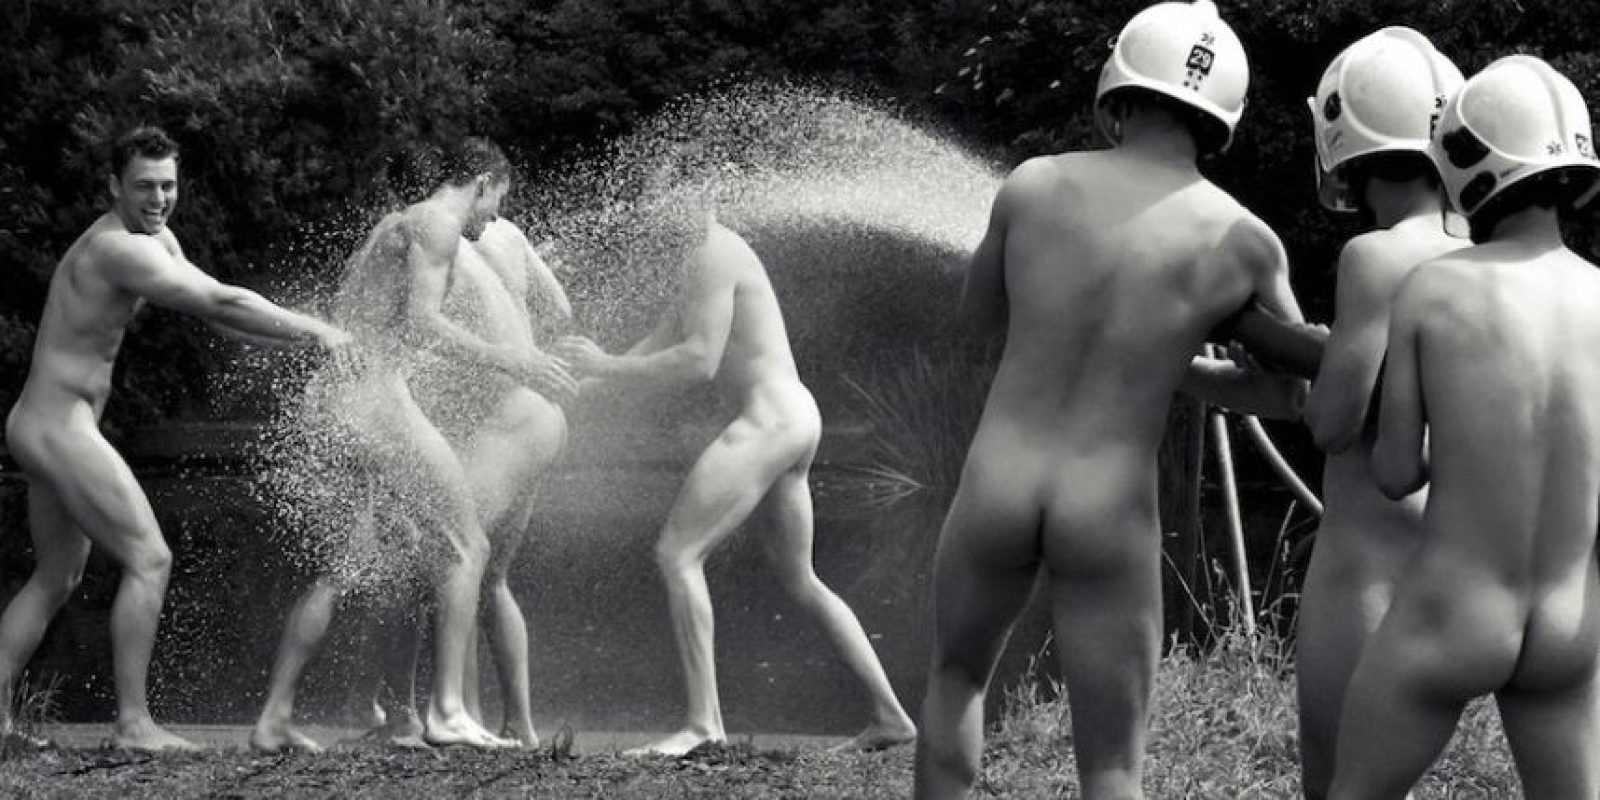 Foto: Warwick Rowing's Men's Naked Calendar